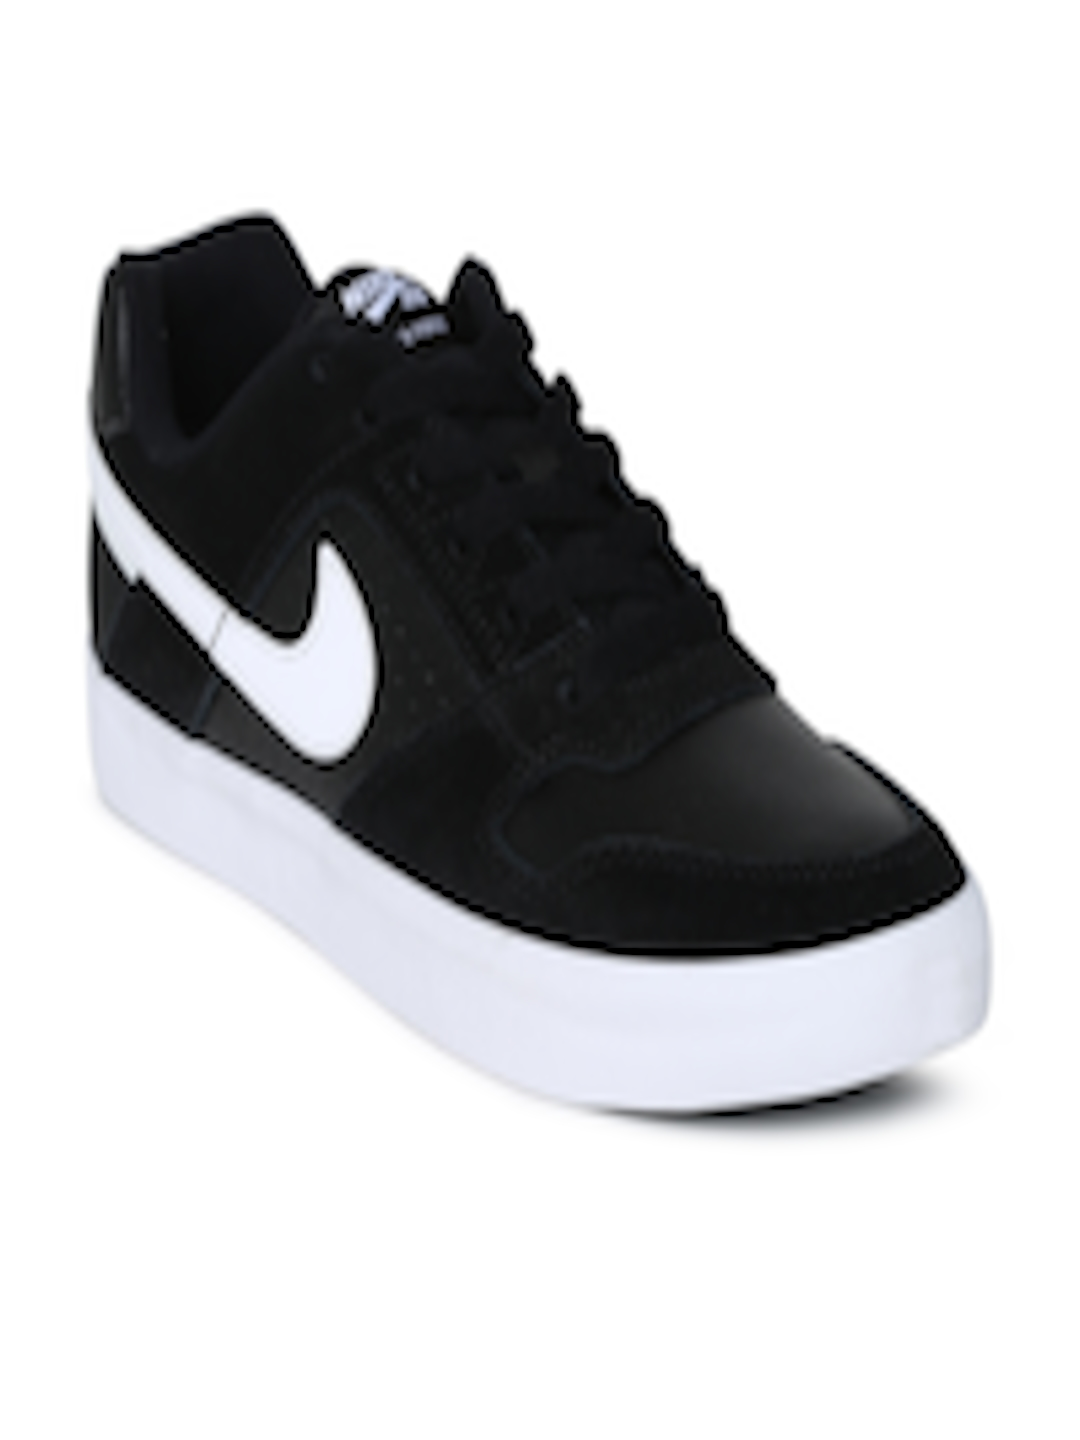 062c9e89d03 Buy Nike Men Black SB DELTA FORCE VULC Skateboarding Shoe - Sports Shoes  for Men 4698765 | Myntra